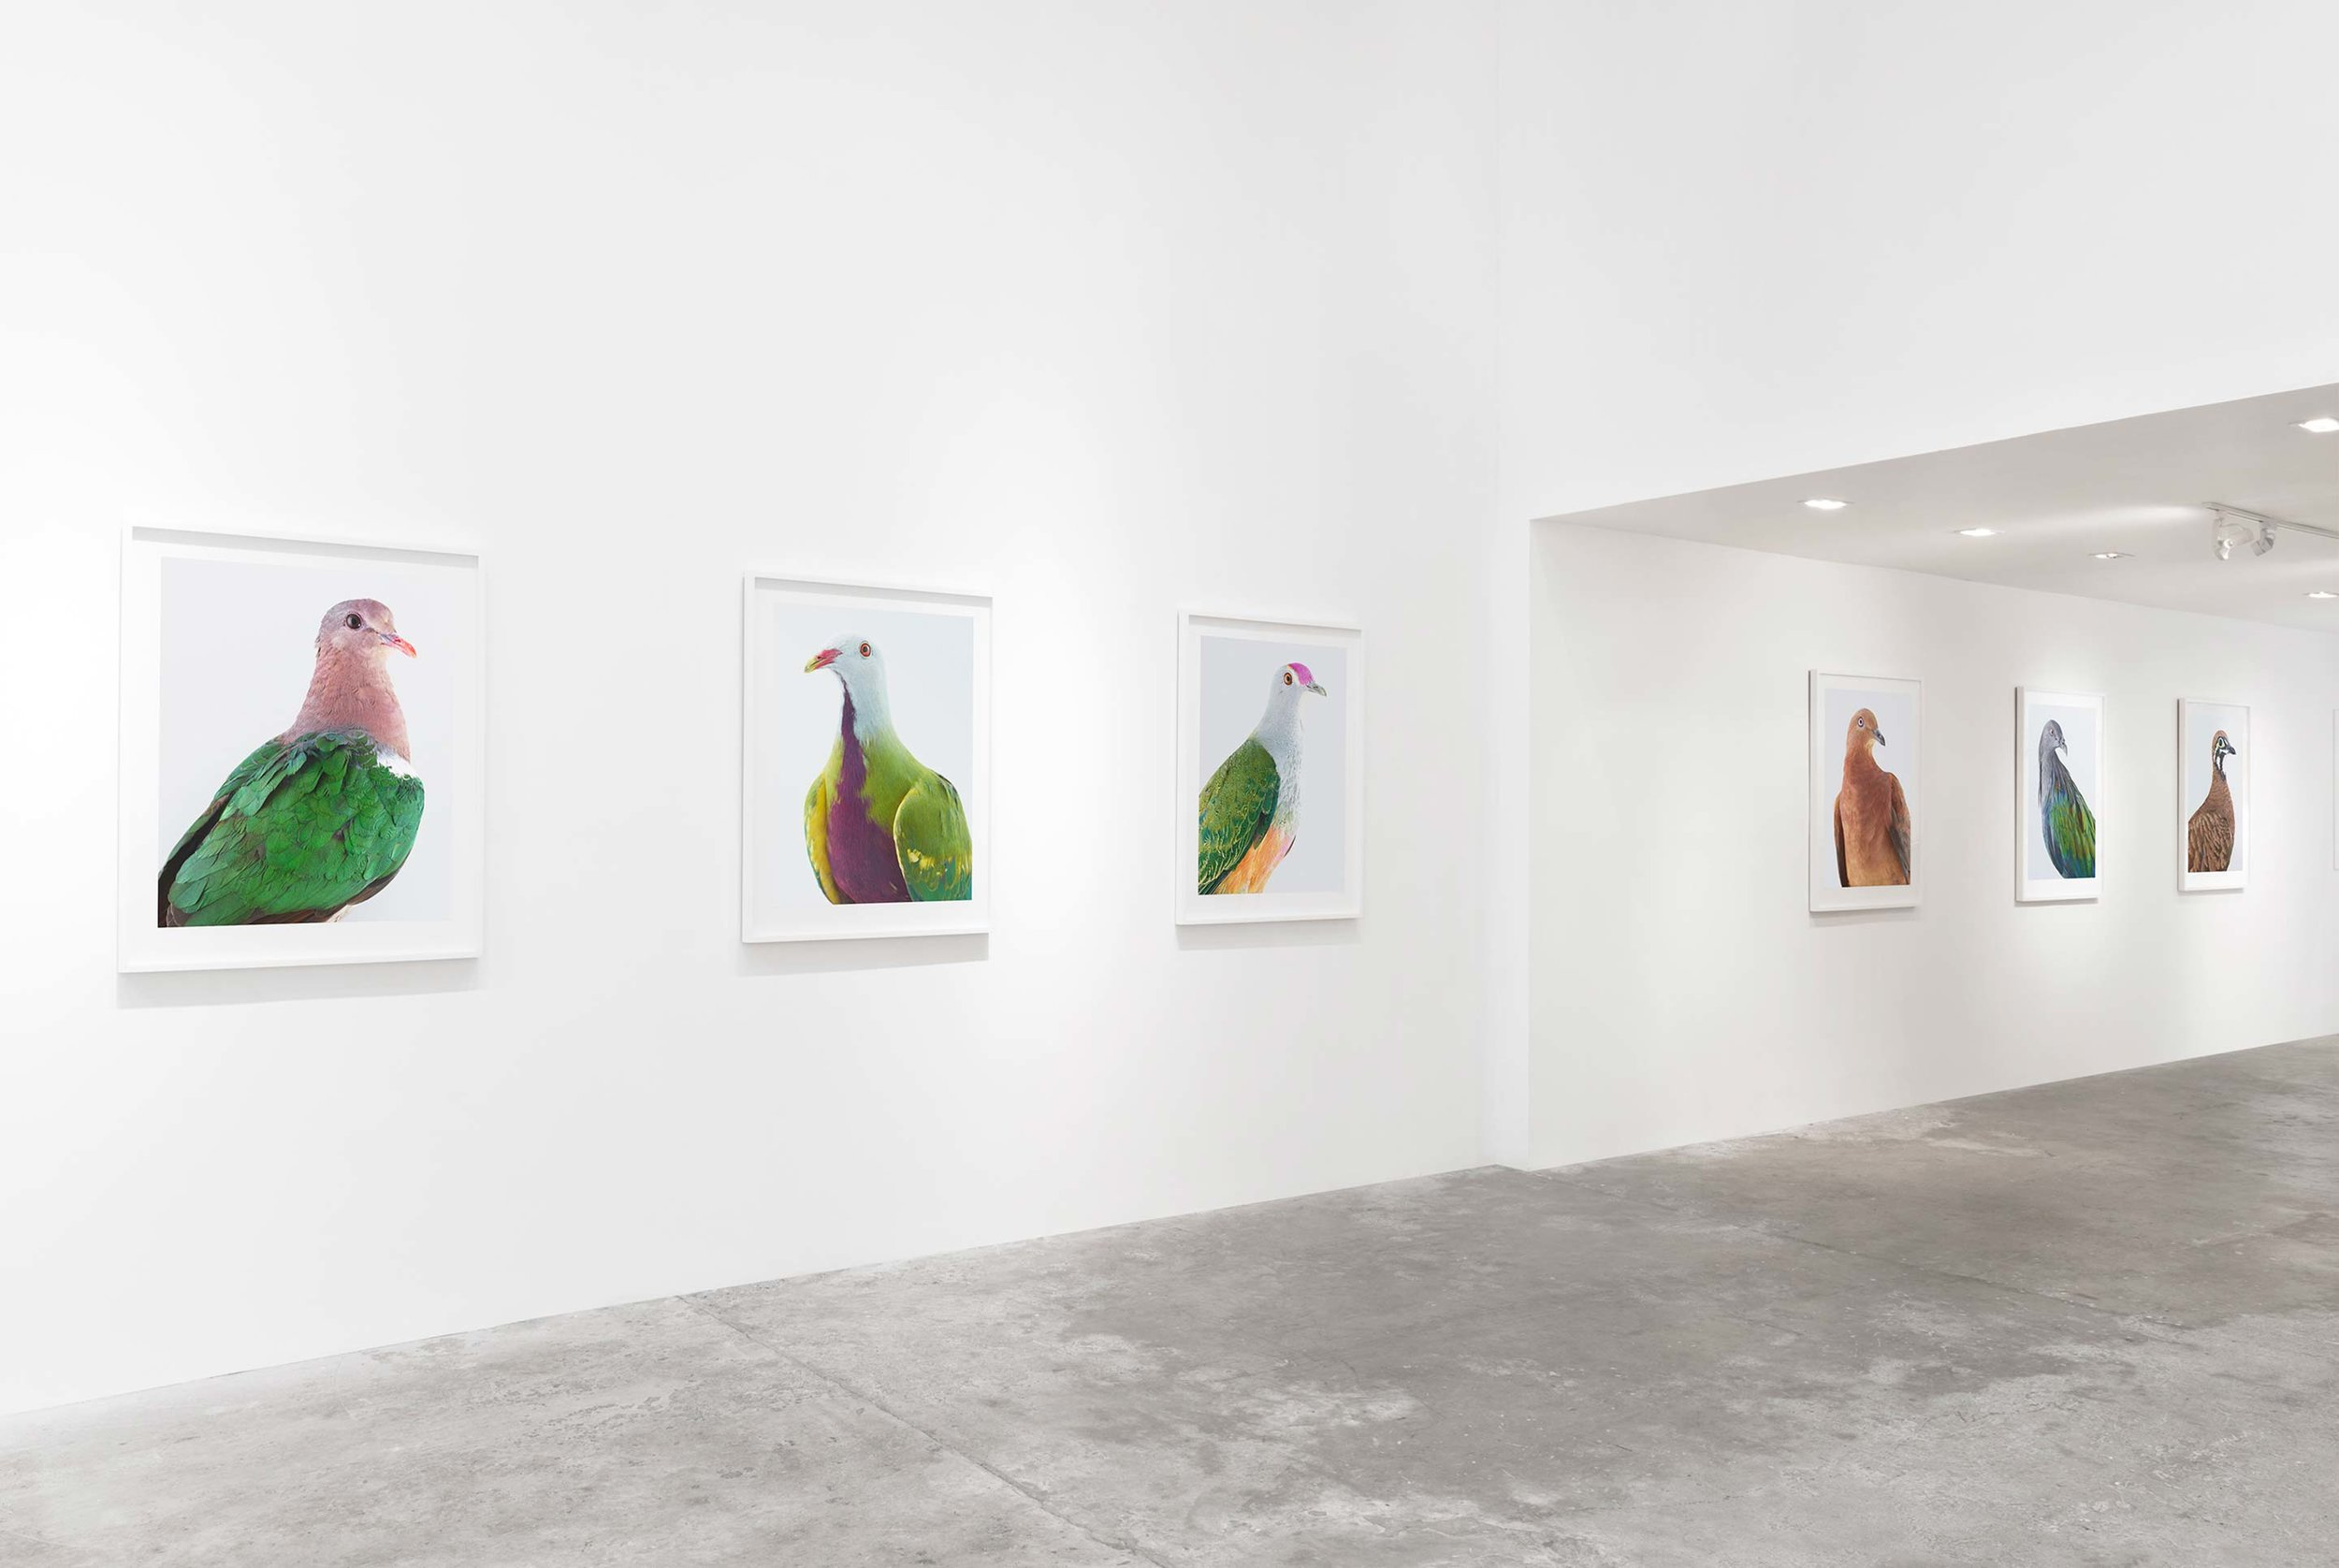 Installation view, Ornithurae, 2017, Olsen Gruin Gallery, New York